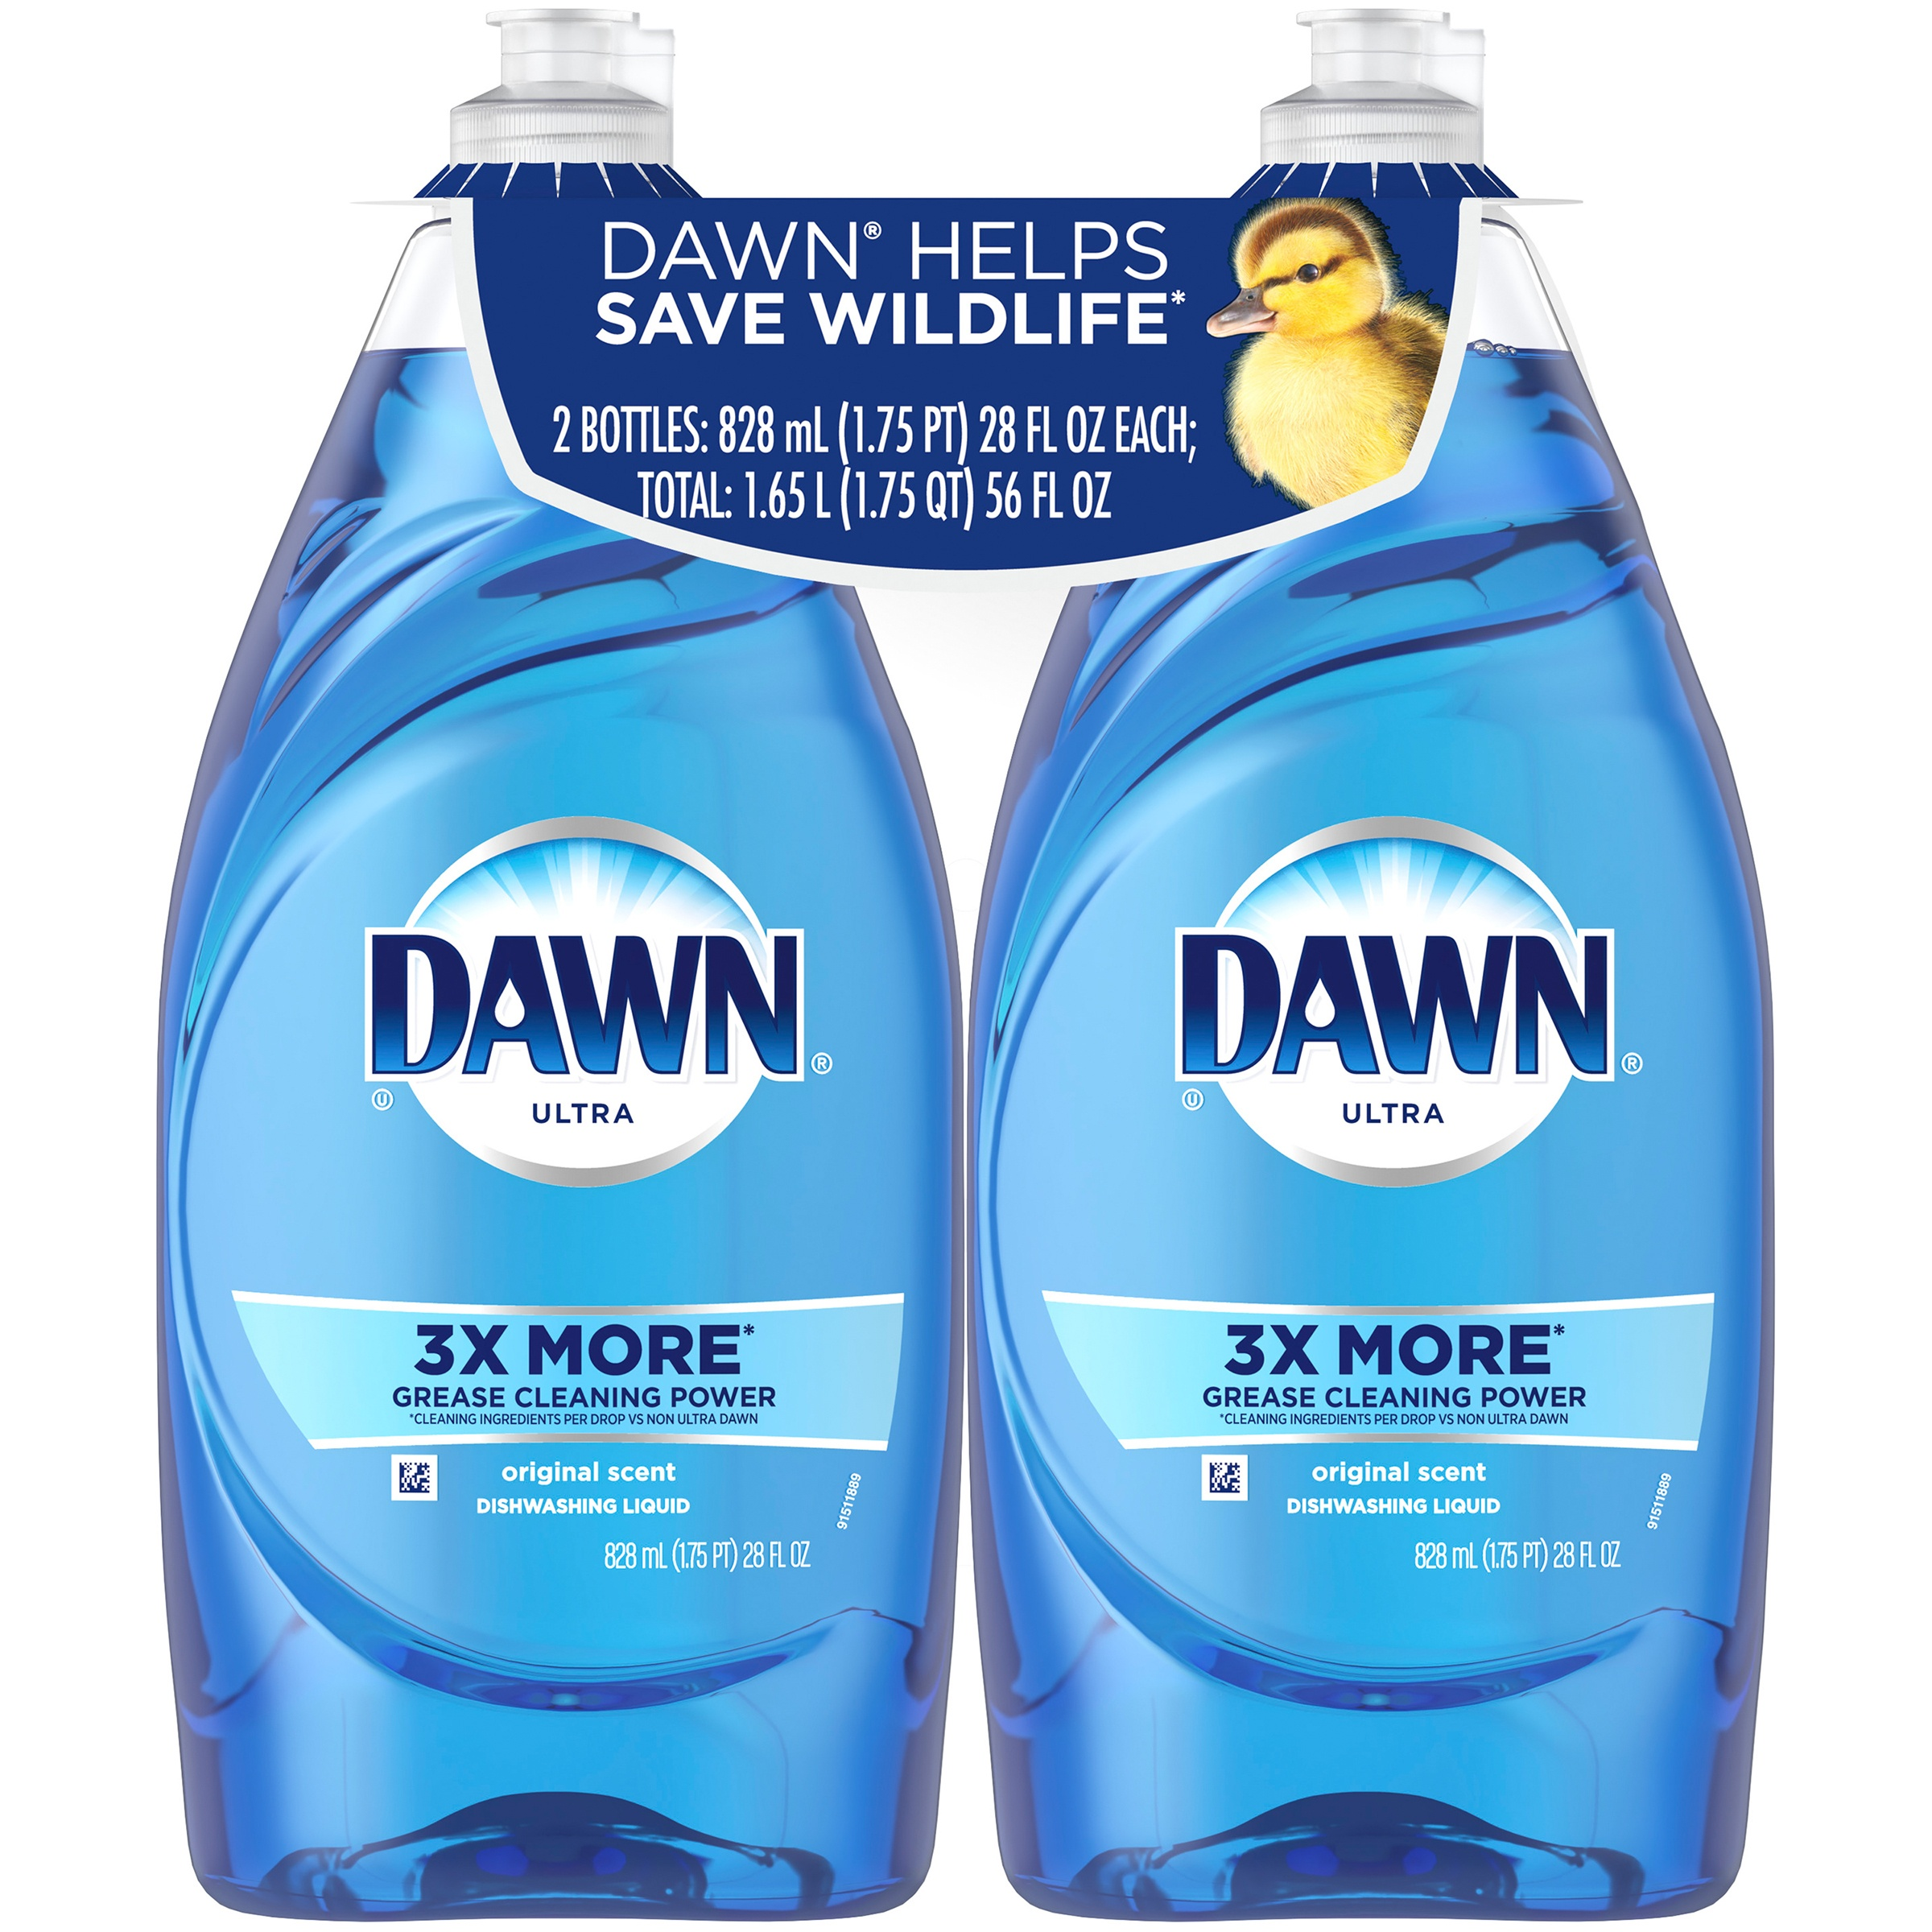 Dawn Ultra Dishwashing Liquid Dish Soap Original Scent 2x28 oz